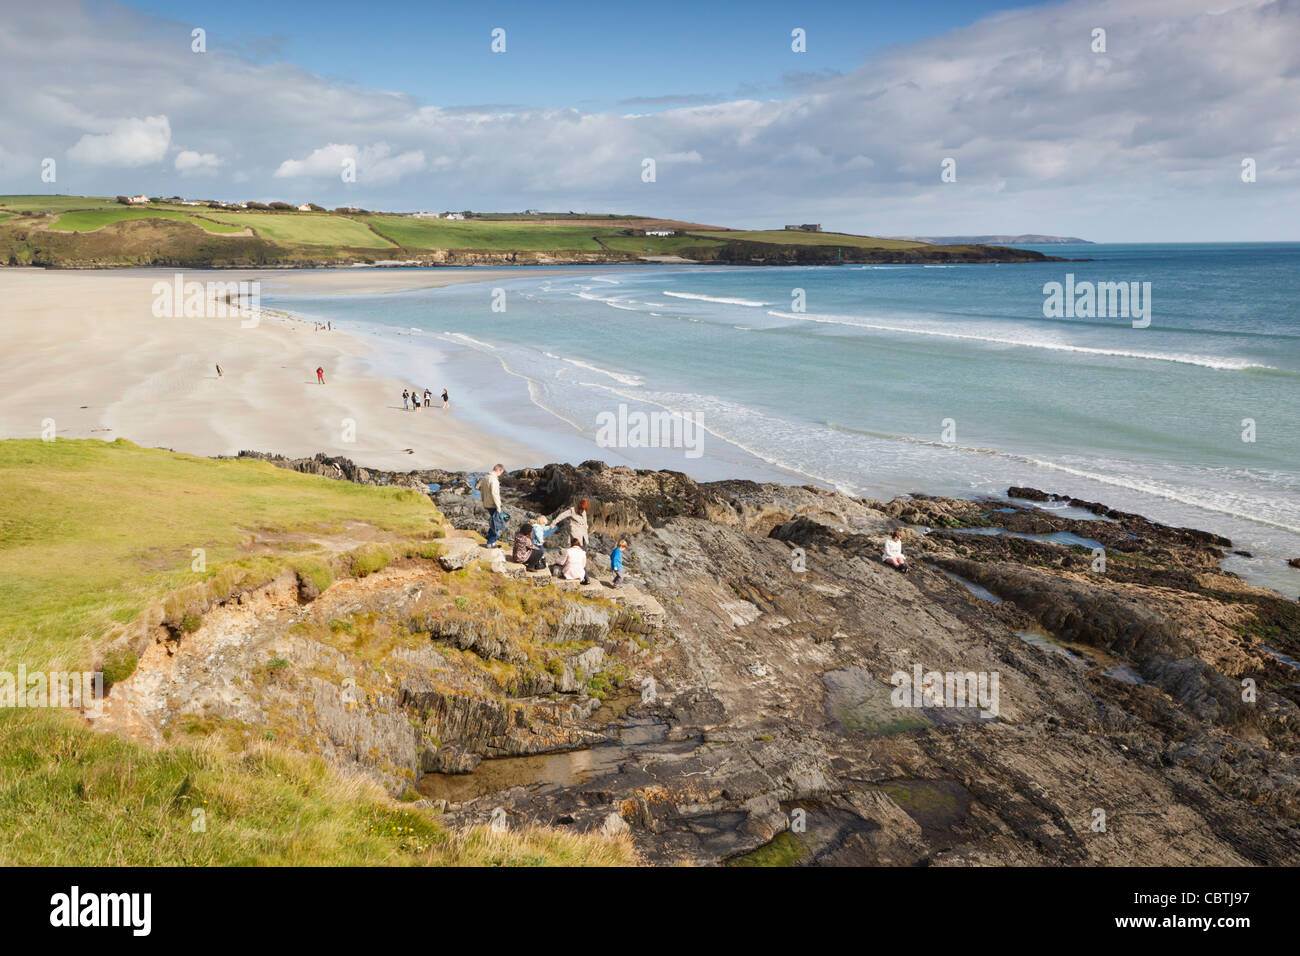 Clonakilty, West Cork - Irelands Resort town